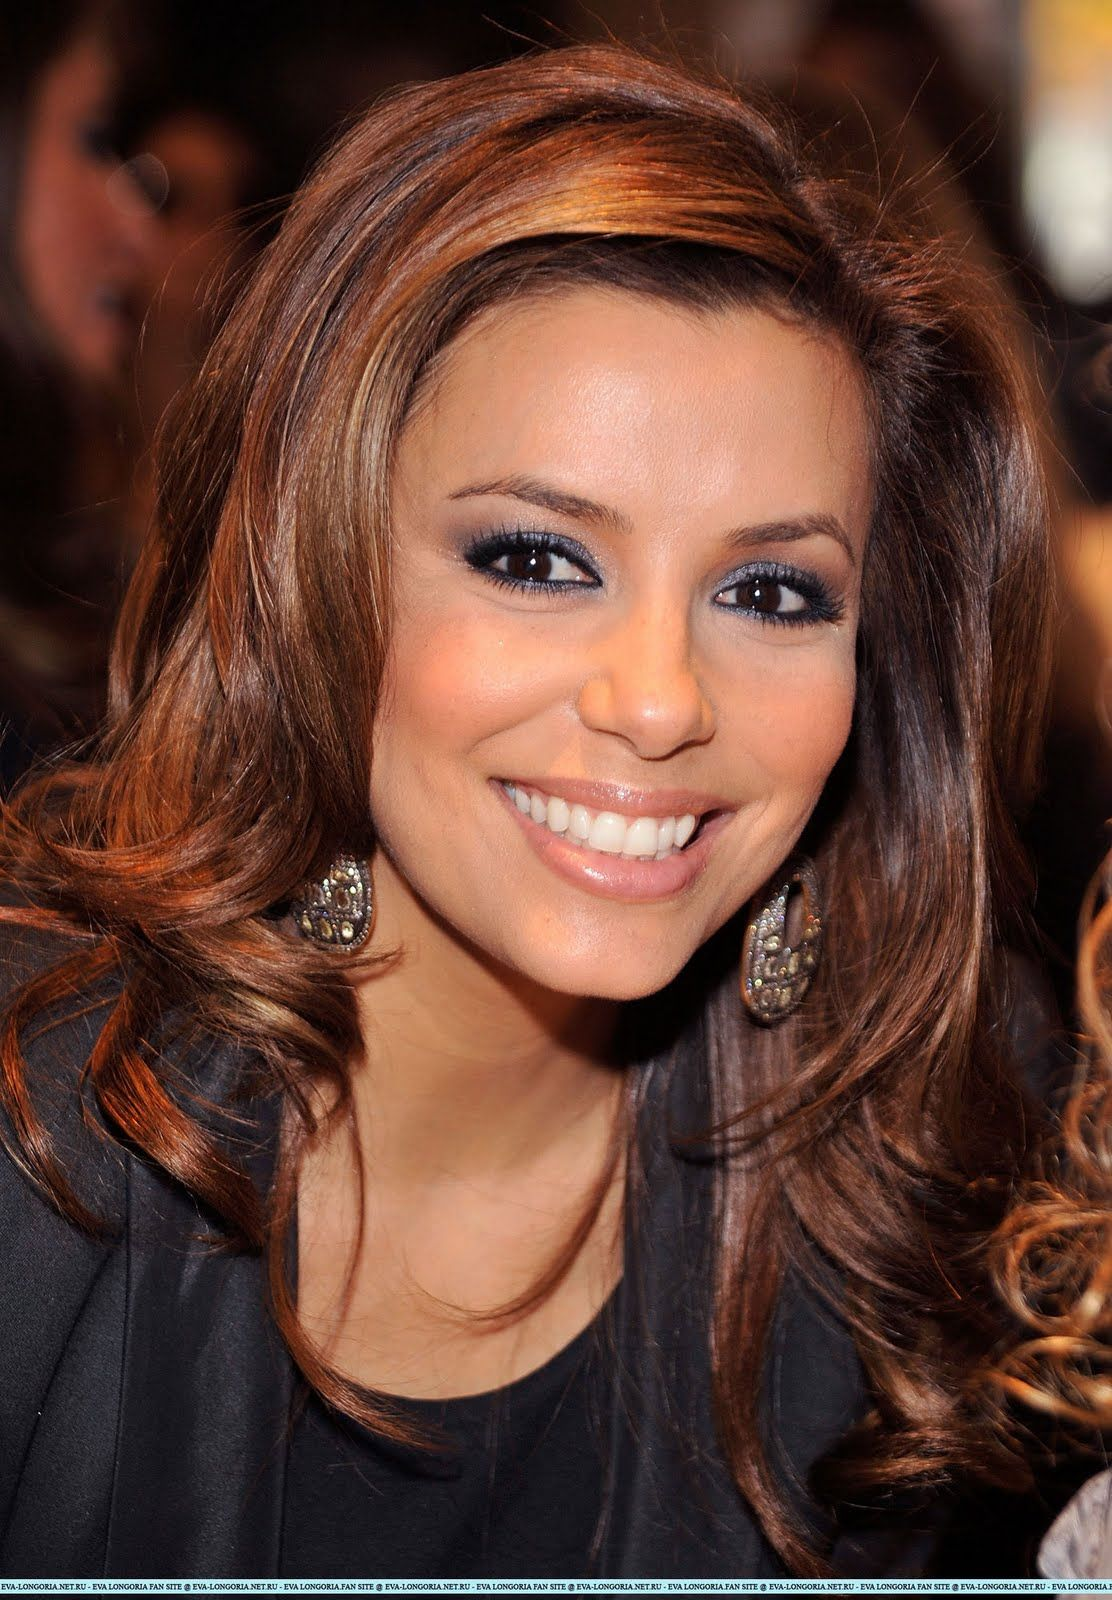 Eva Longoria Hairstyles Classy Eva Longoria Love The Hair Color  Peinados  Pinterest  Eva